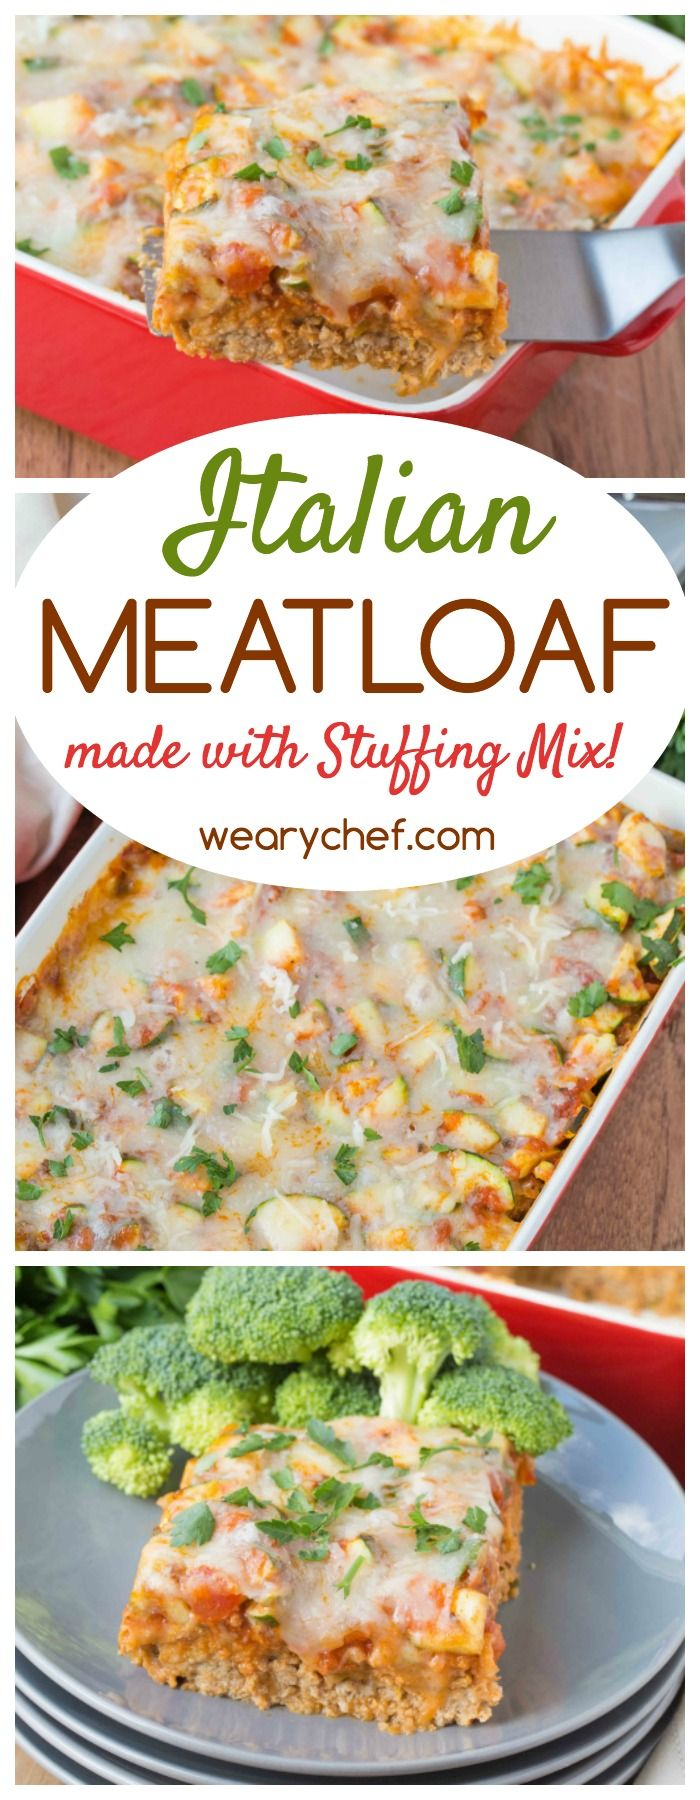 stove-top-stuffing-meatloaf